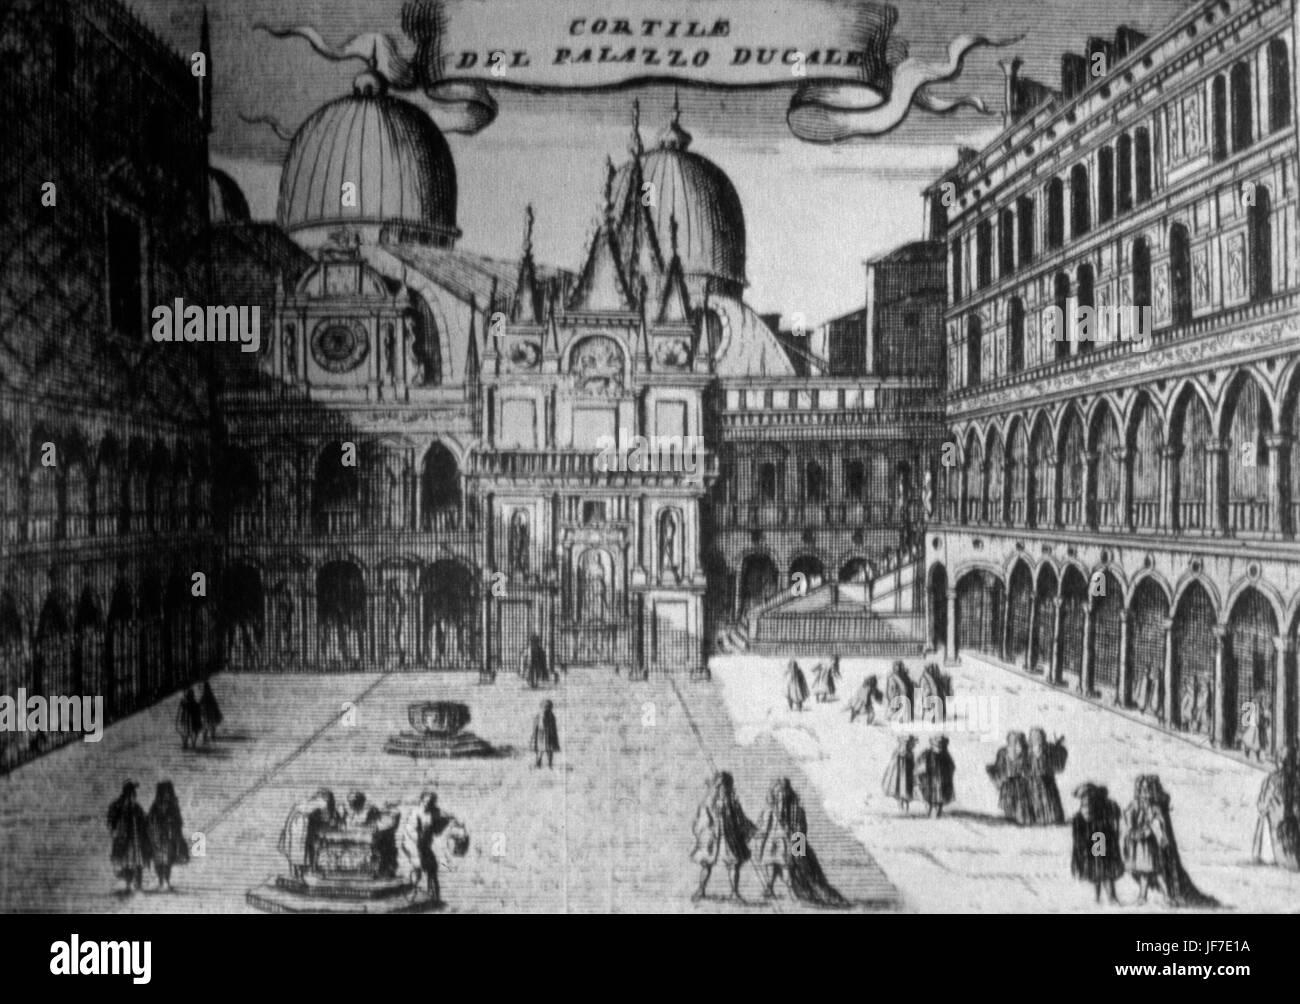 Doge's Palace, Venice. Courtyard of the Doge's Palace,at the time of Vivaldi, Albinoni, Galuppi, Caldara. - Stock Image